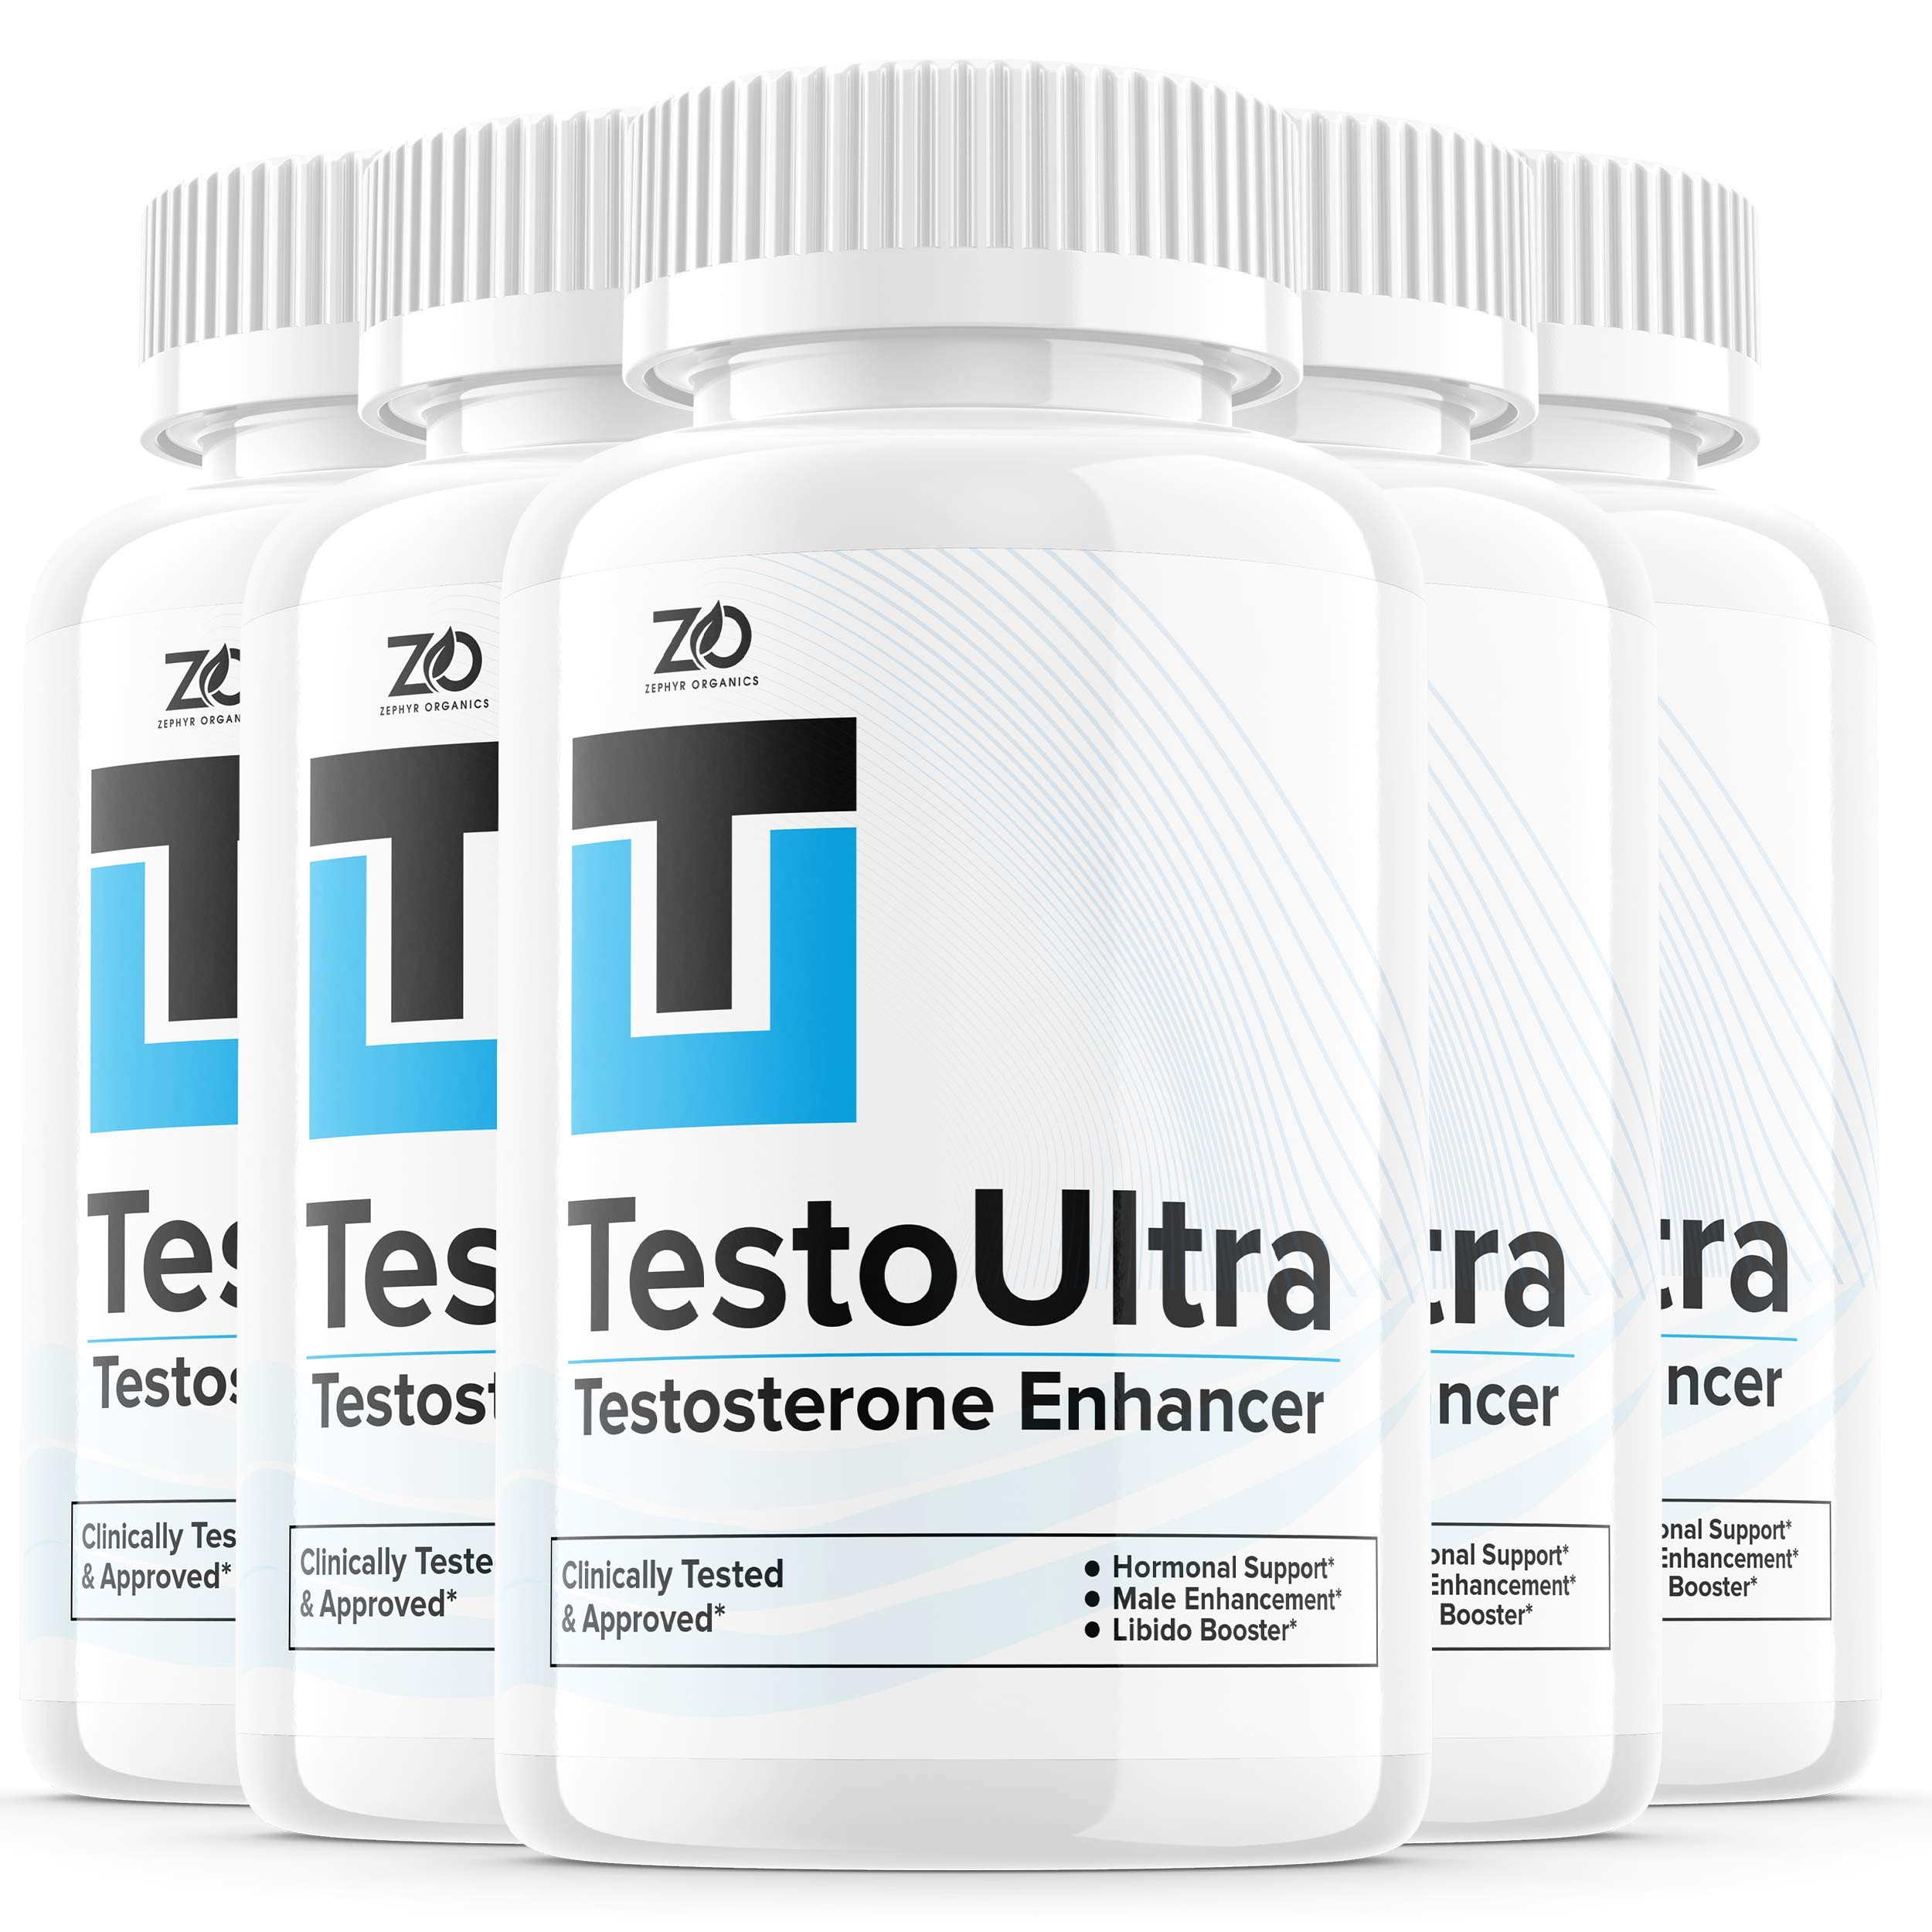 (5 Pack) TestoUltra Capsules Pills for Men Natural Testo Ultra for Man Enhancement Booster Alpha Male - Testoultra Supplement Support - Pastillas Supplemento (300 Capsules)